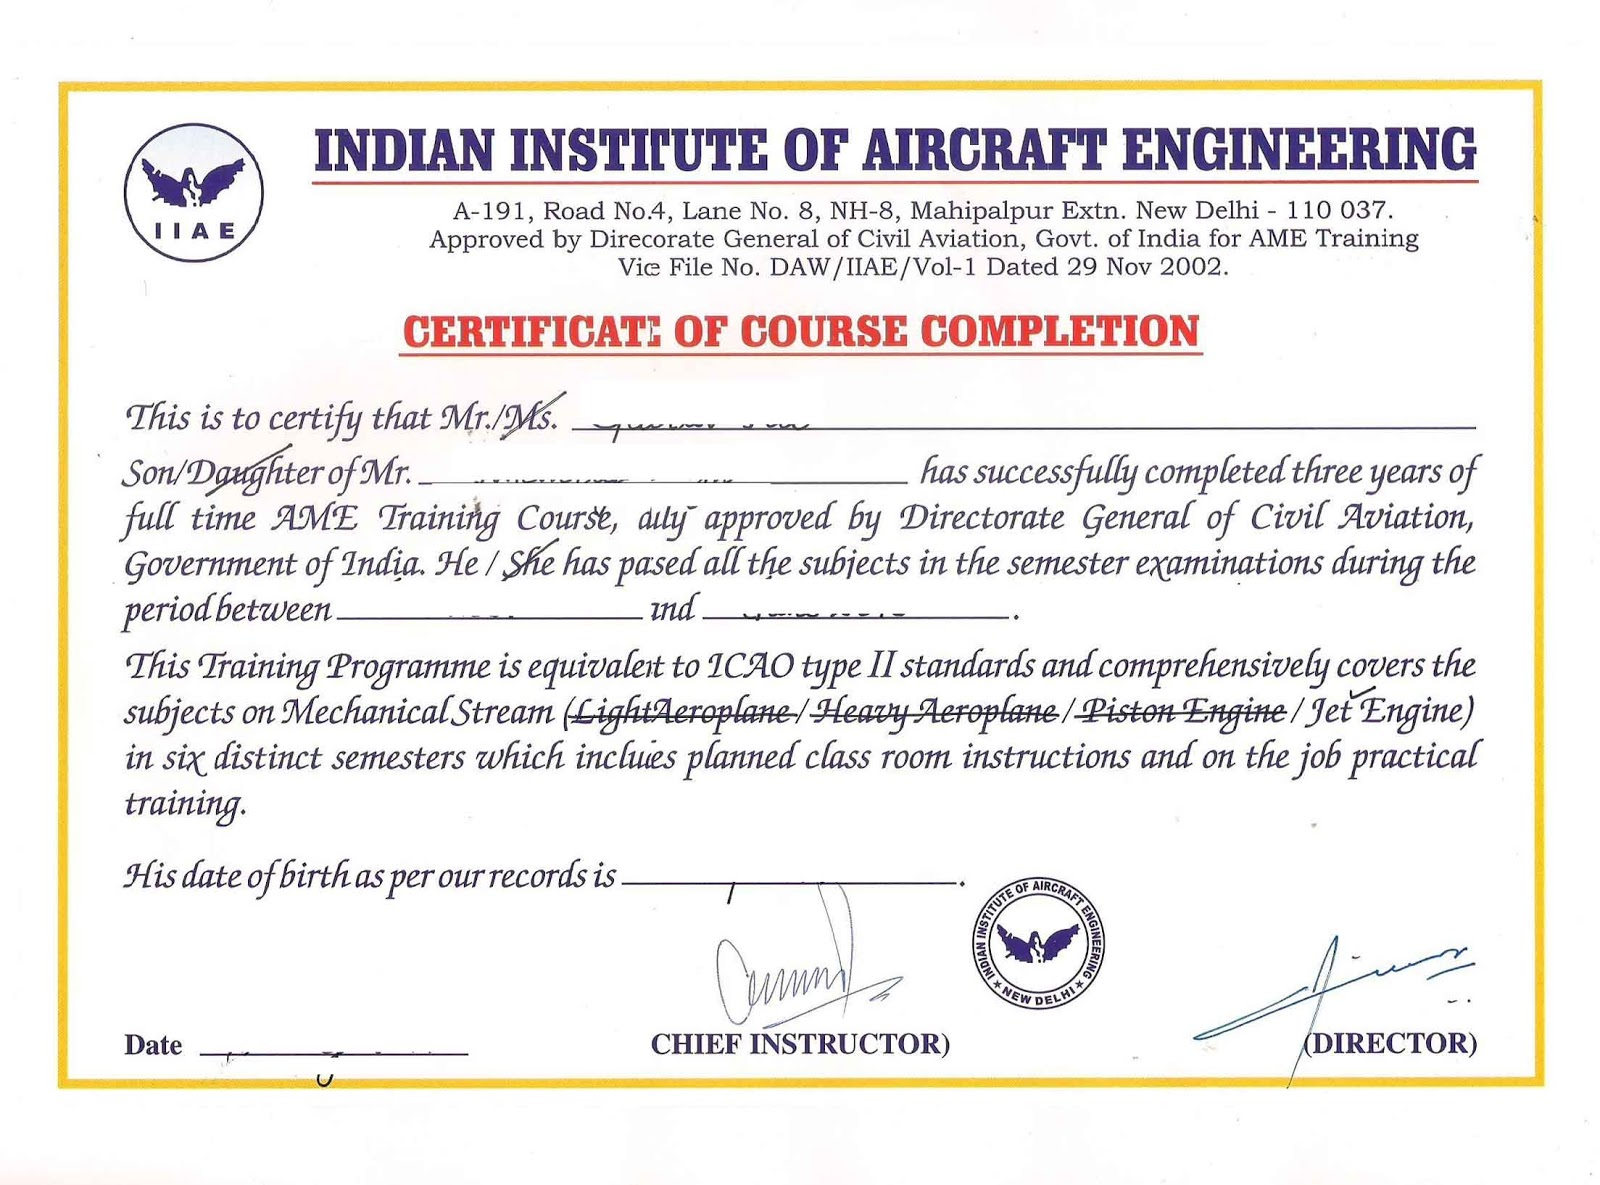 Course completion certificate sample gidiyedformapolitica course completion certificate sample yadclub Image collections